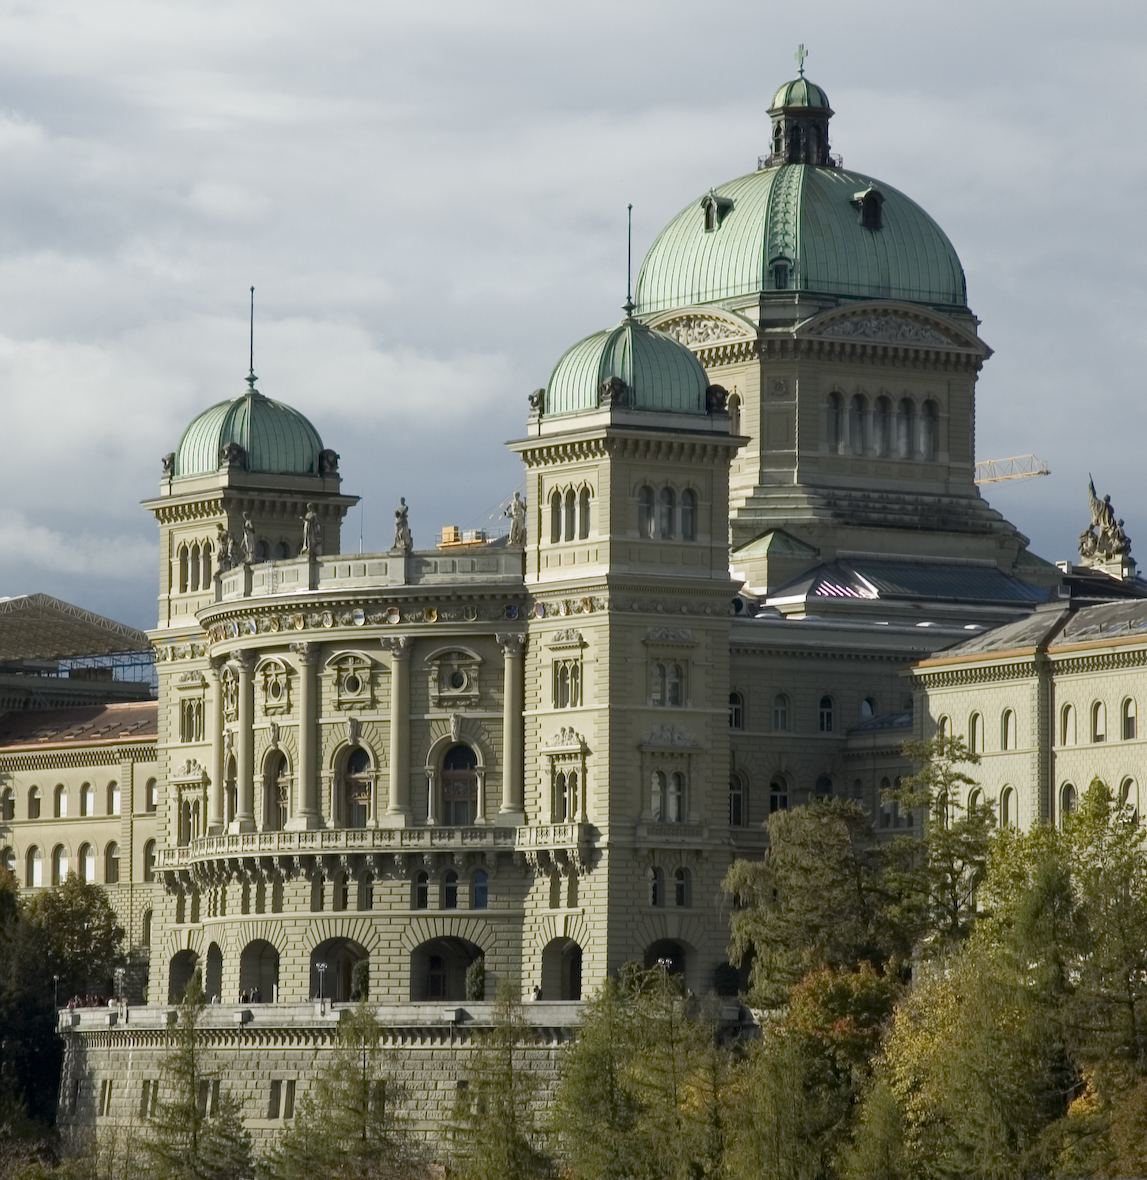 The Swiss Federal Palace (Bundeshaus) in Berne...